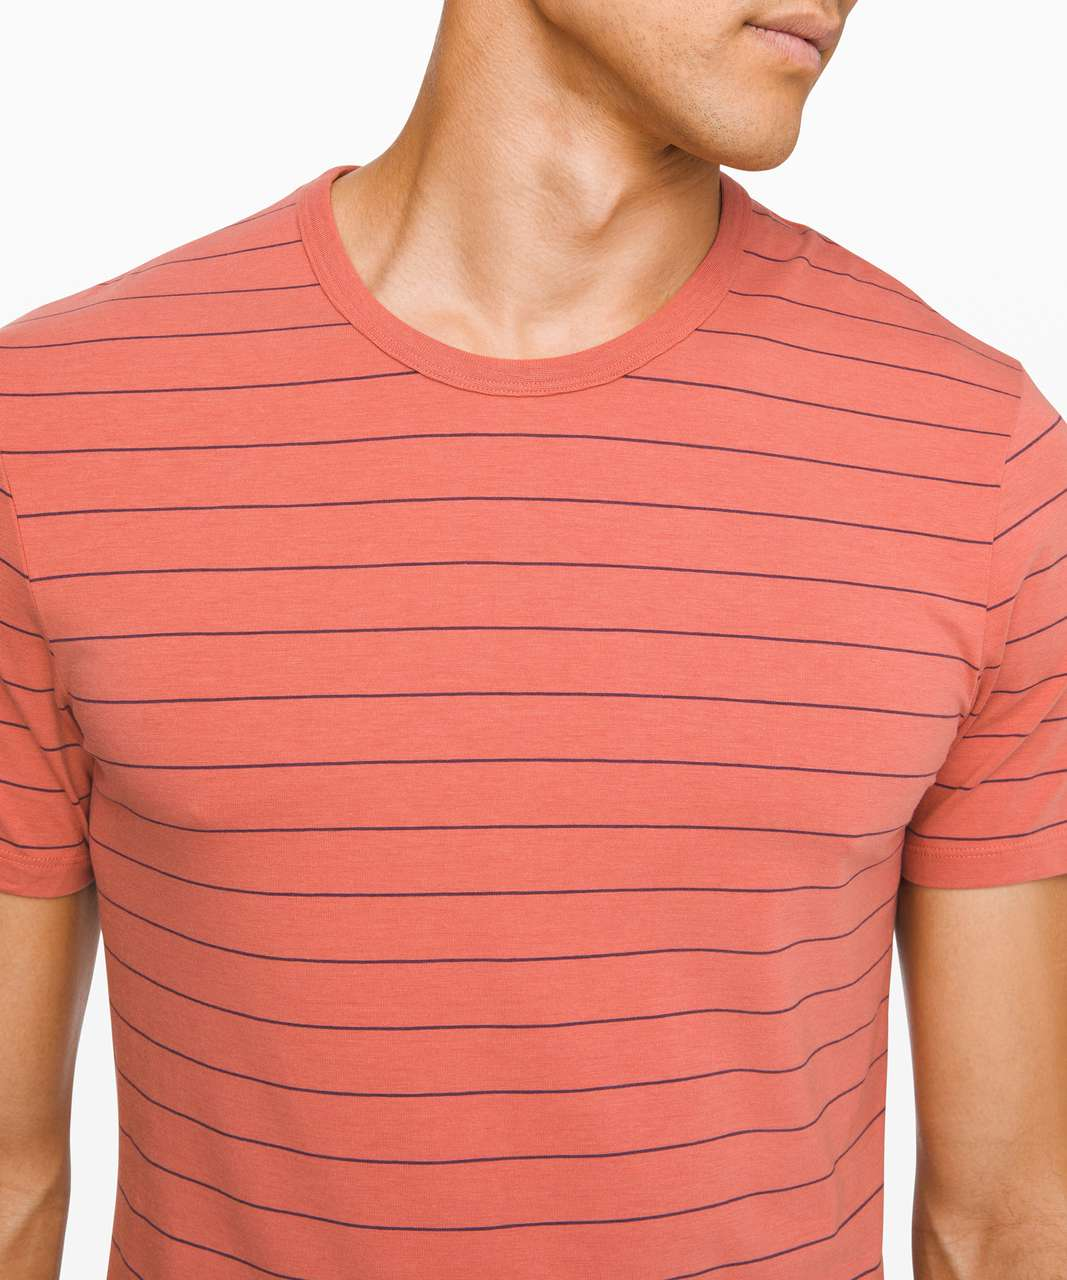 Lululemon 5 Year Basic Tee - Sharp Stripe Copper Clay Arctic Plum